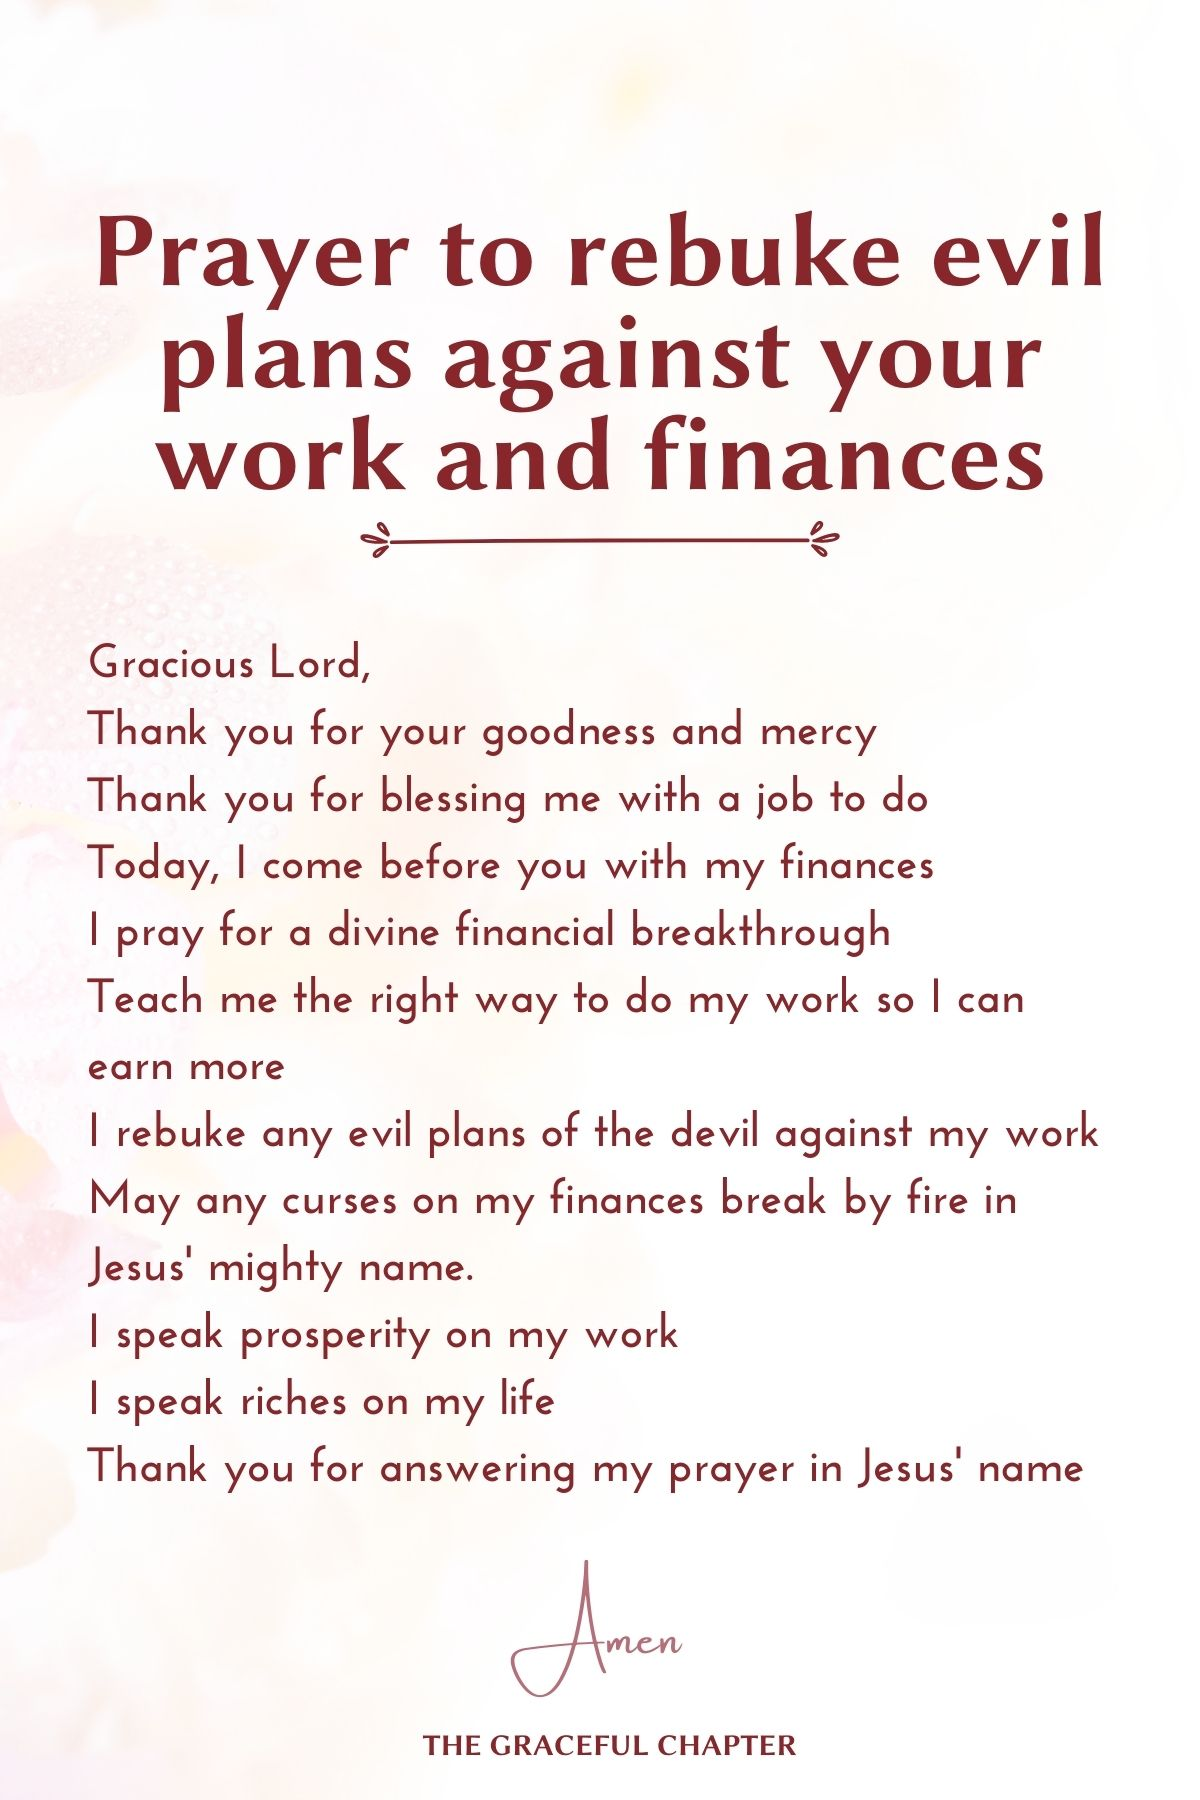 Prayer to rebuke evil plans against your work and finances